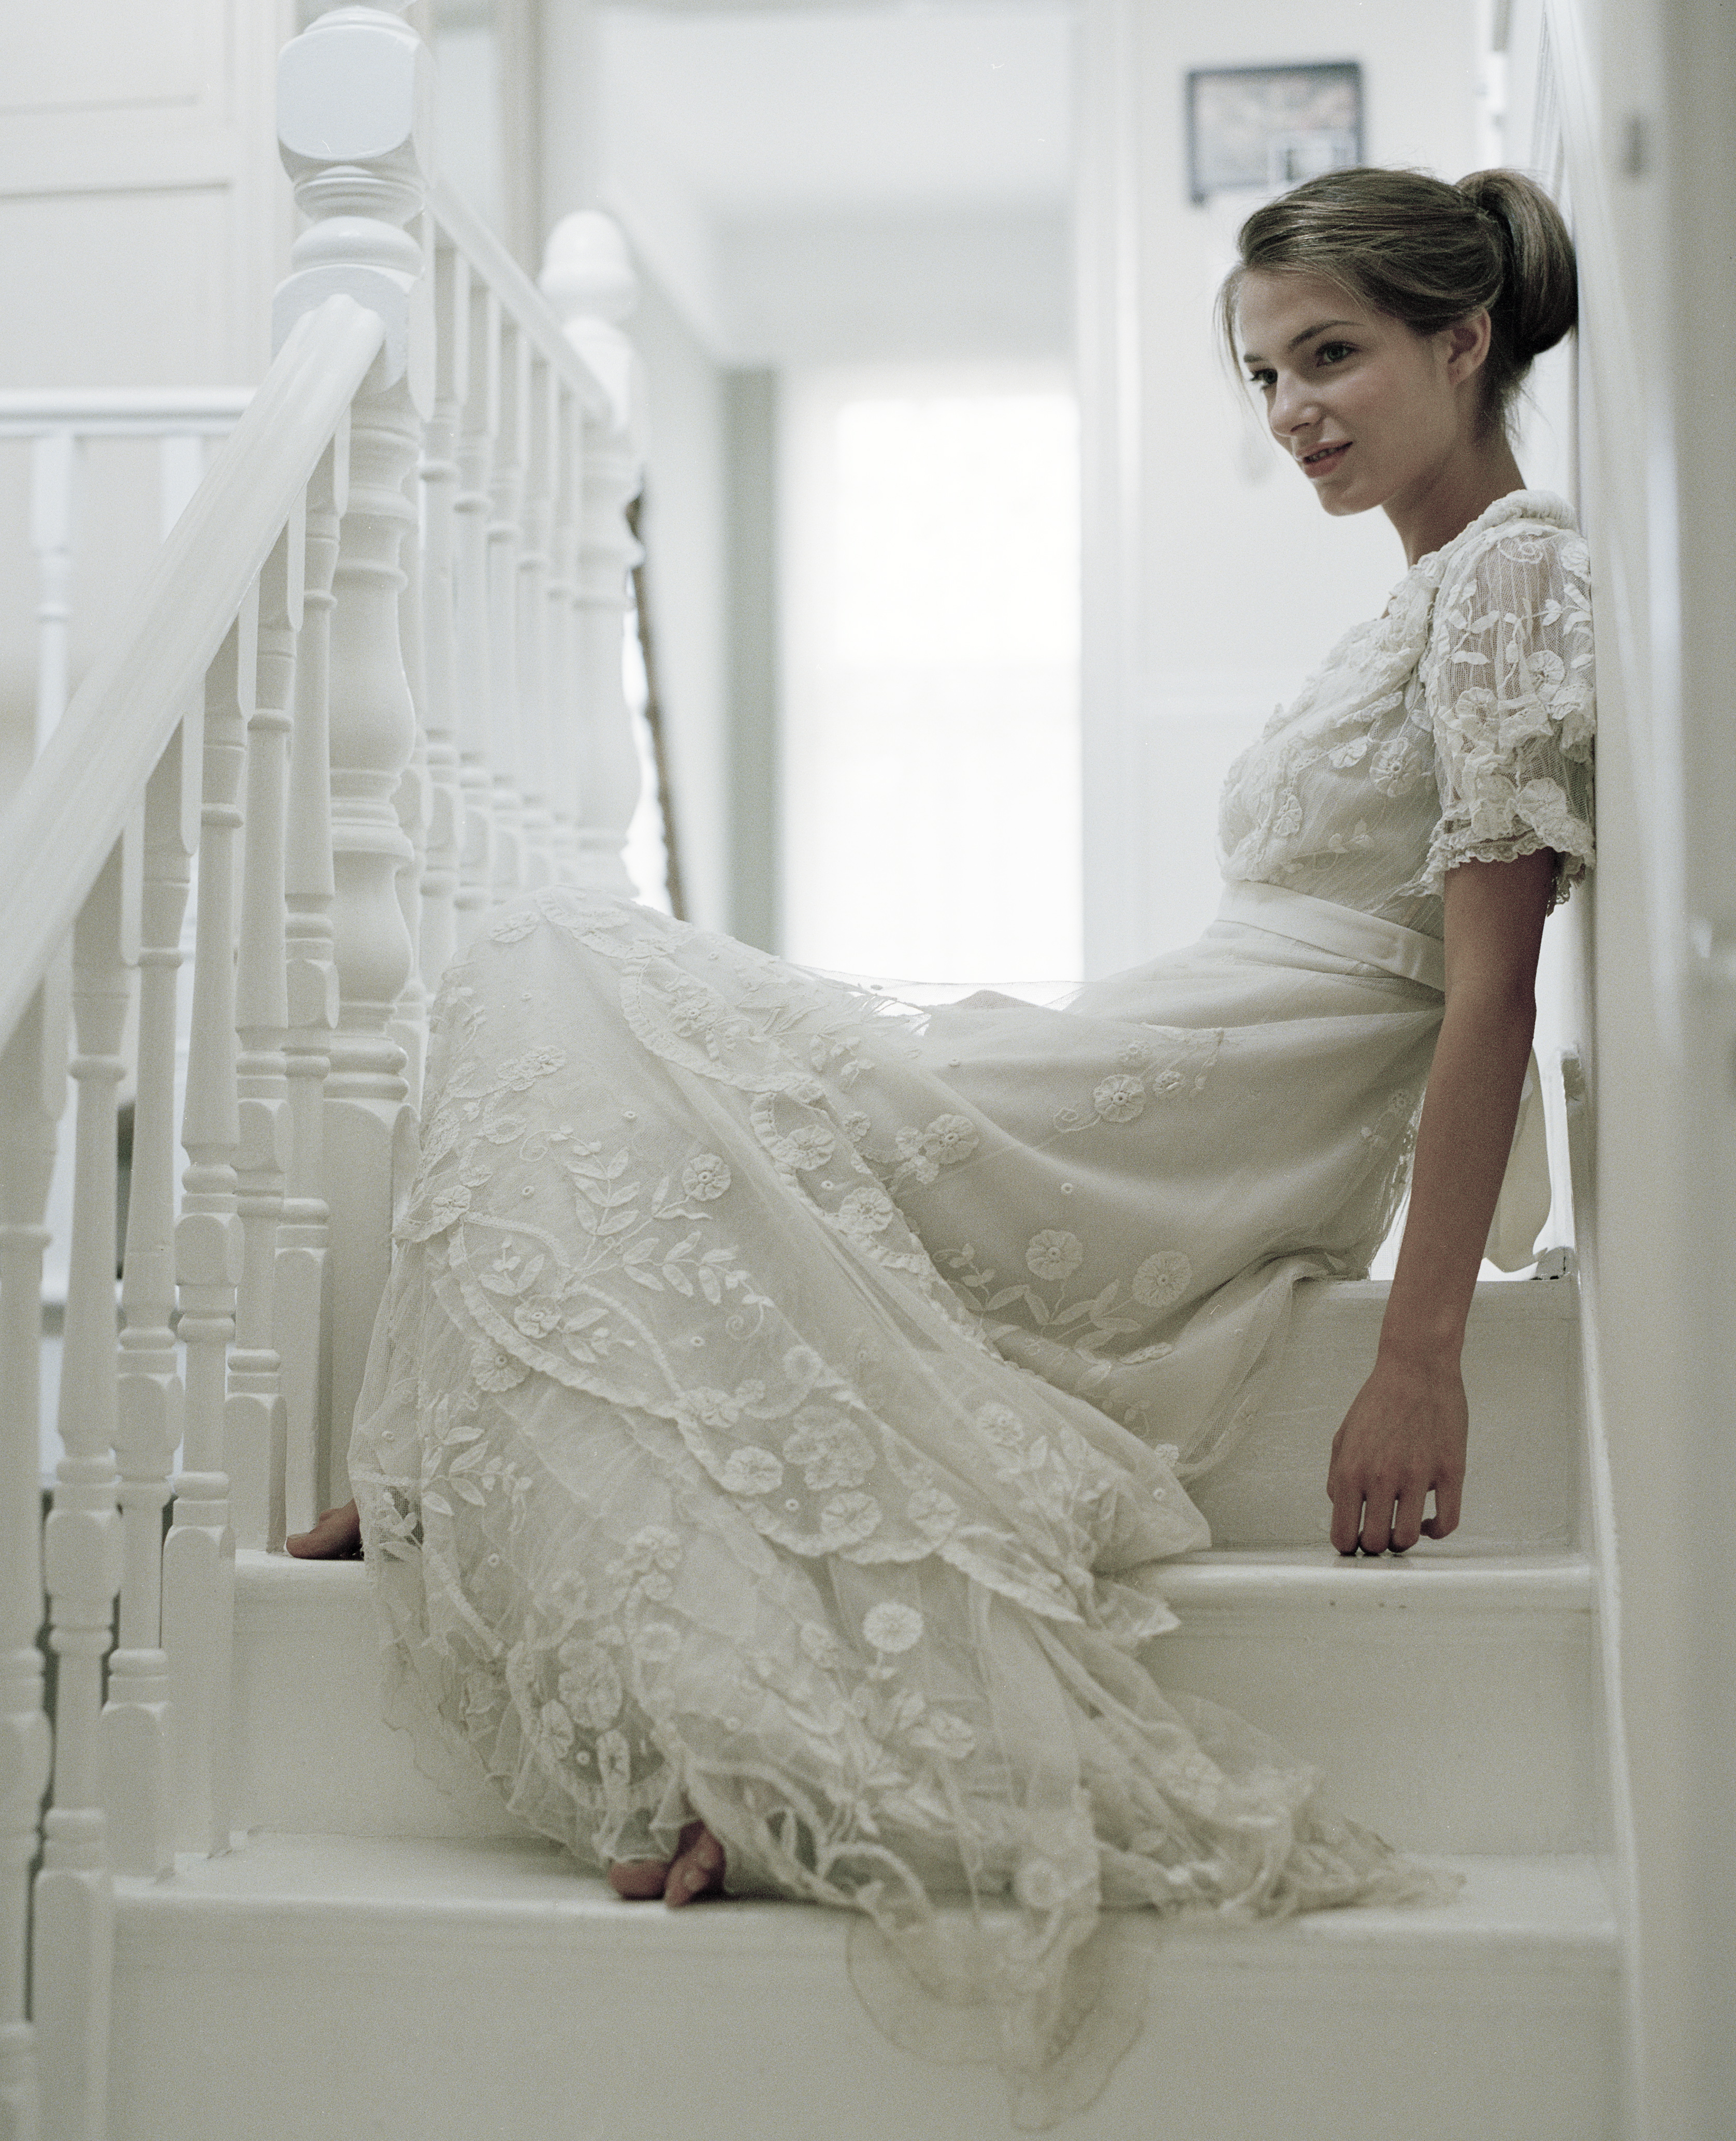 used vintage wedding dresses used designer wedding dresses Used Vintage Wedding Dresses 43